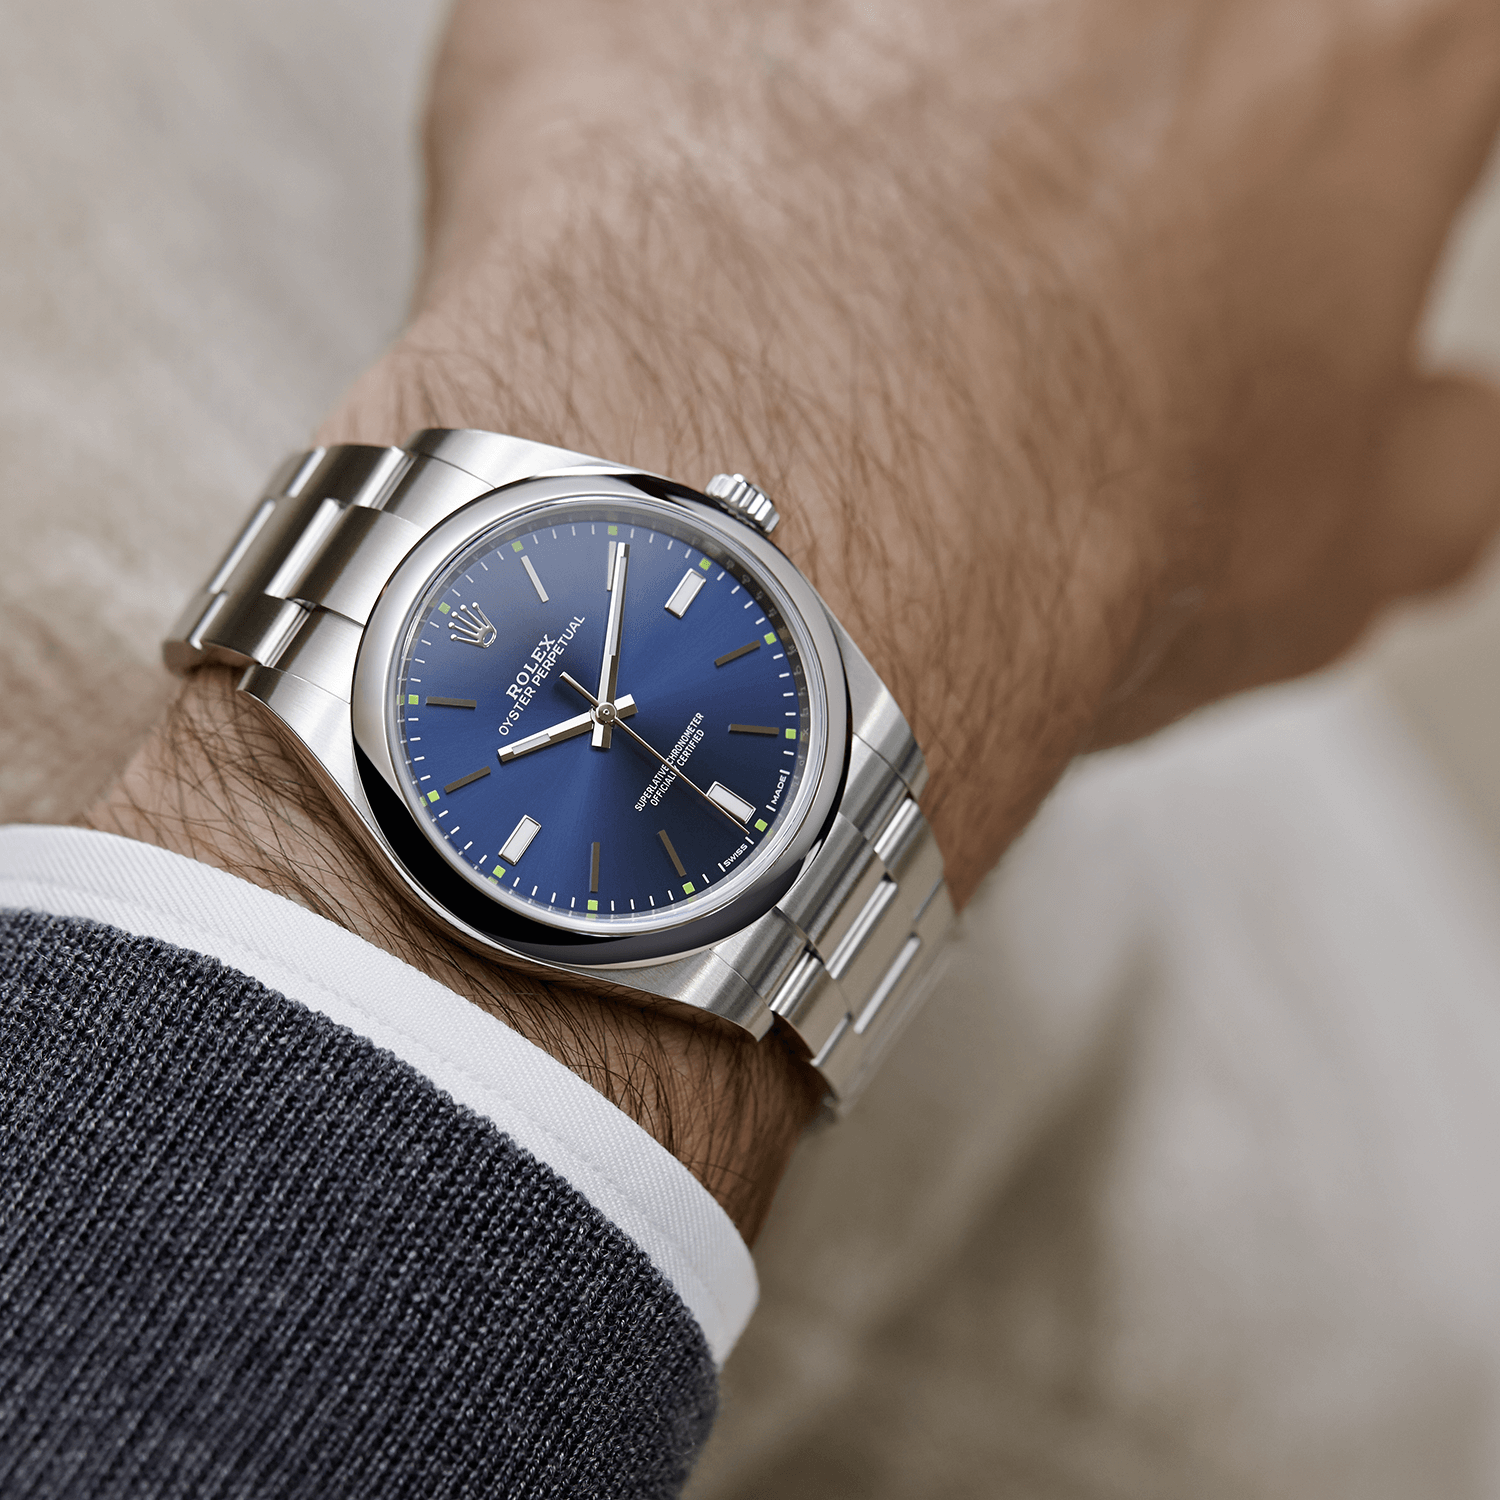 a34faceb47f The Rolex Oyster Perpetual 39 in Oystersteel